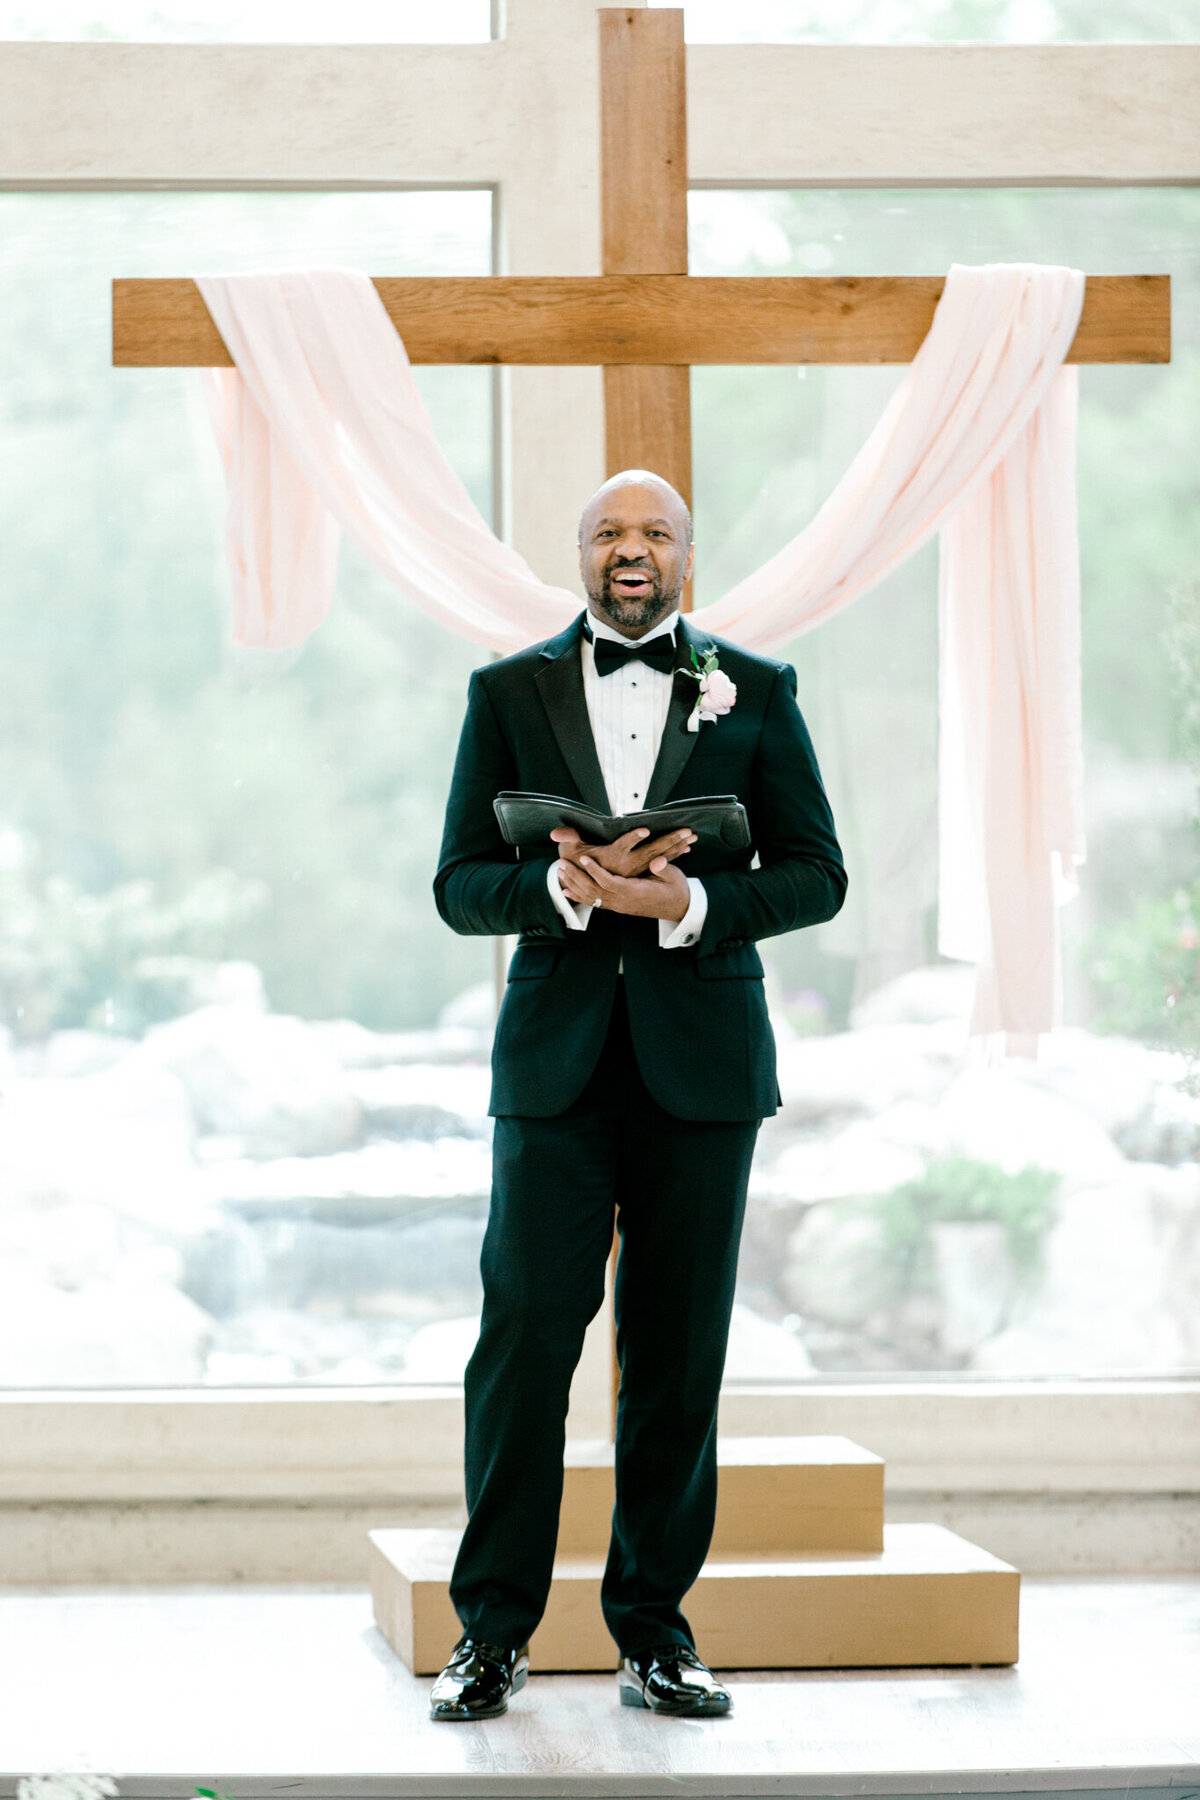 Jasmine & Josh Wedding at Knotting Hill Place | Dallas DFW Wedding Photographer | Sami Kathryn Photography-67